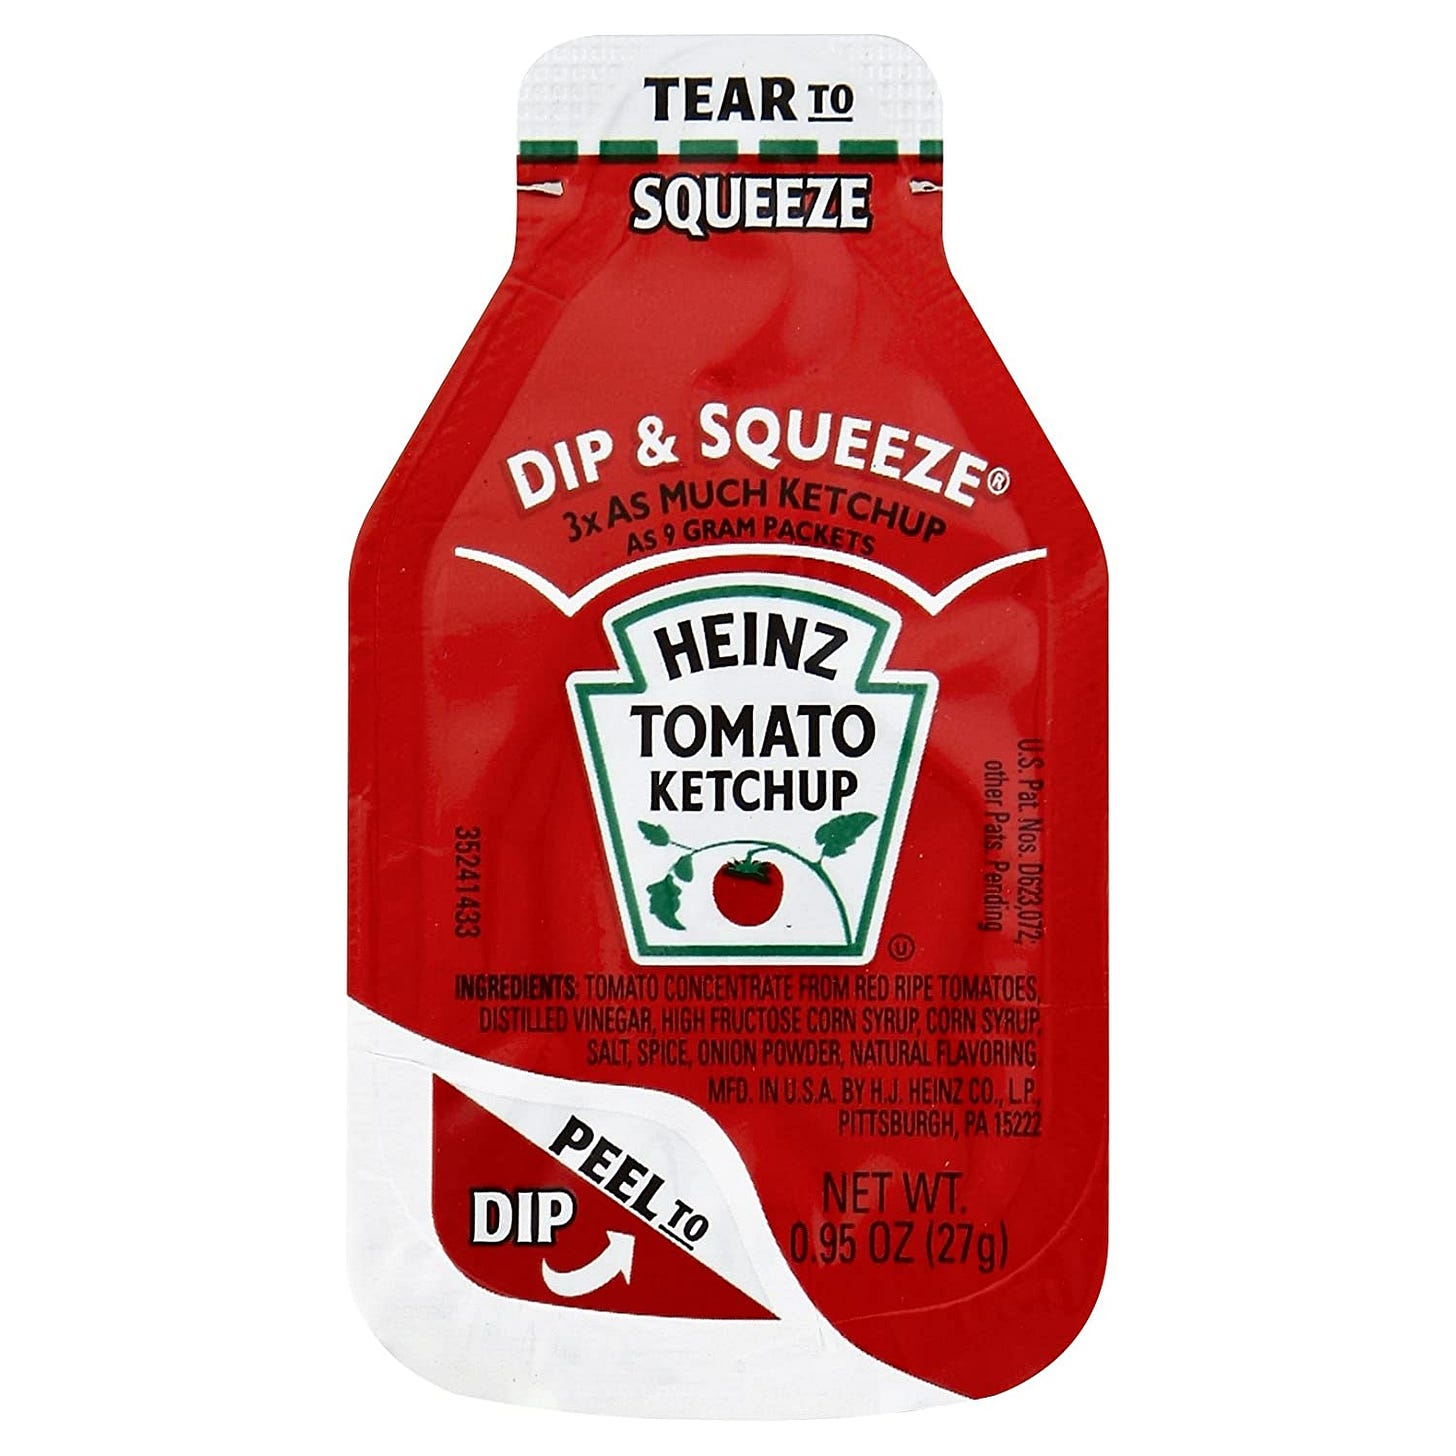 Amazon.com : Heinz Ketchup Dip & Squeeze Single Serve Packets (0.95 oz  Packets, Pack of 500) : Grocery & Gourmet Food